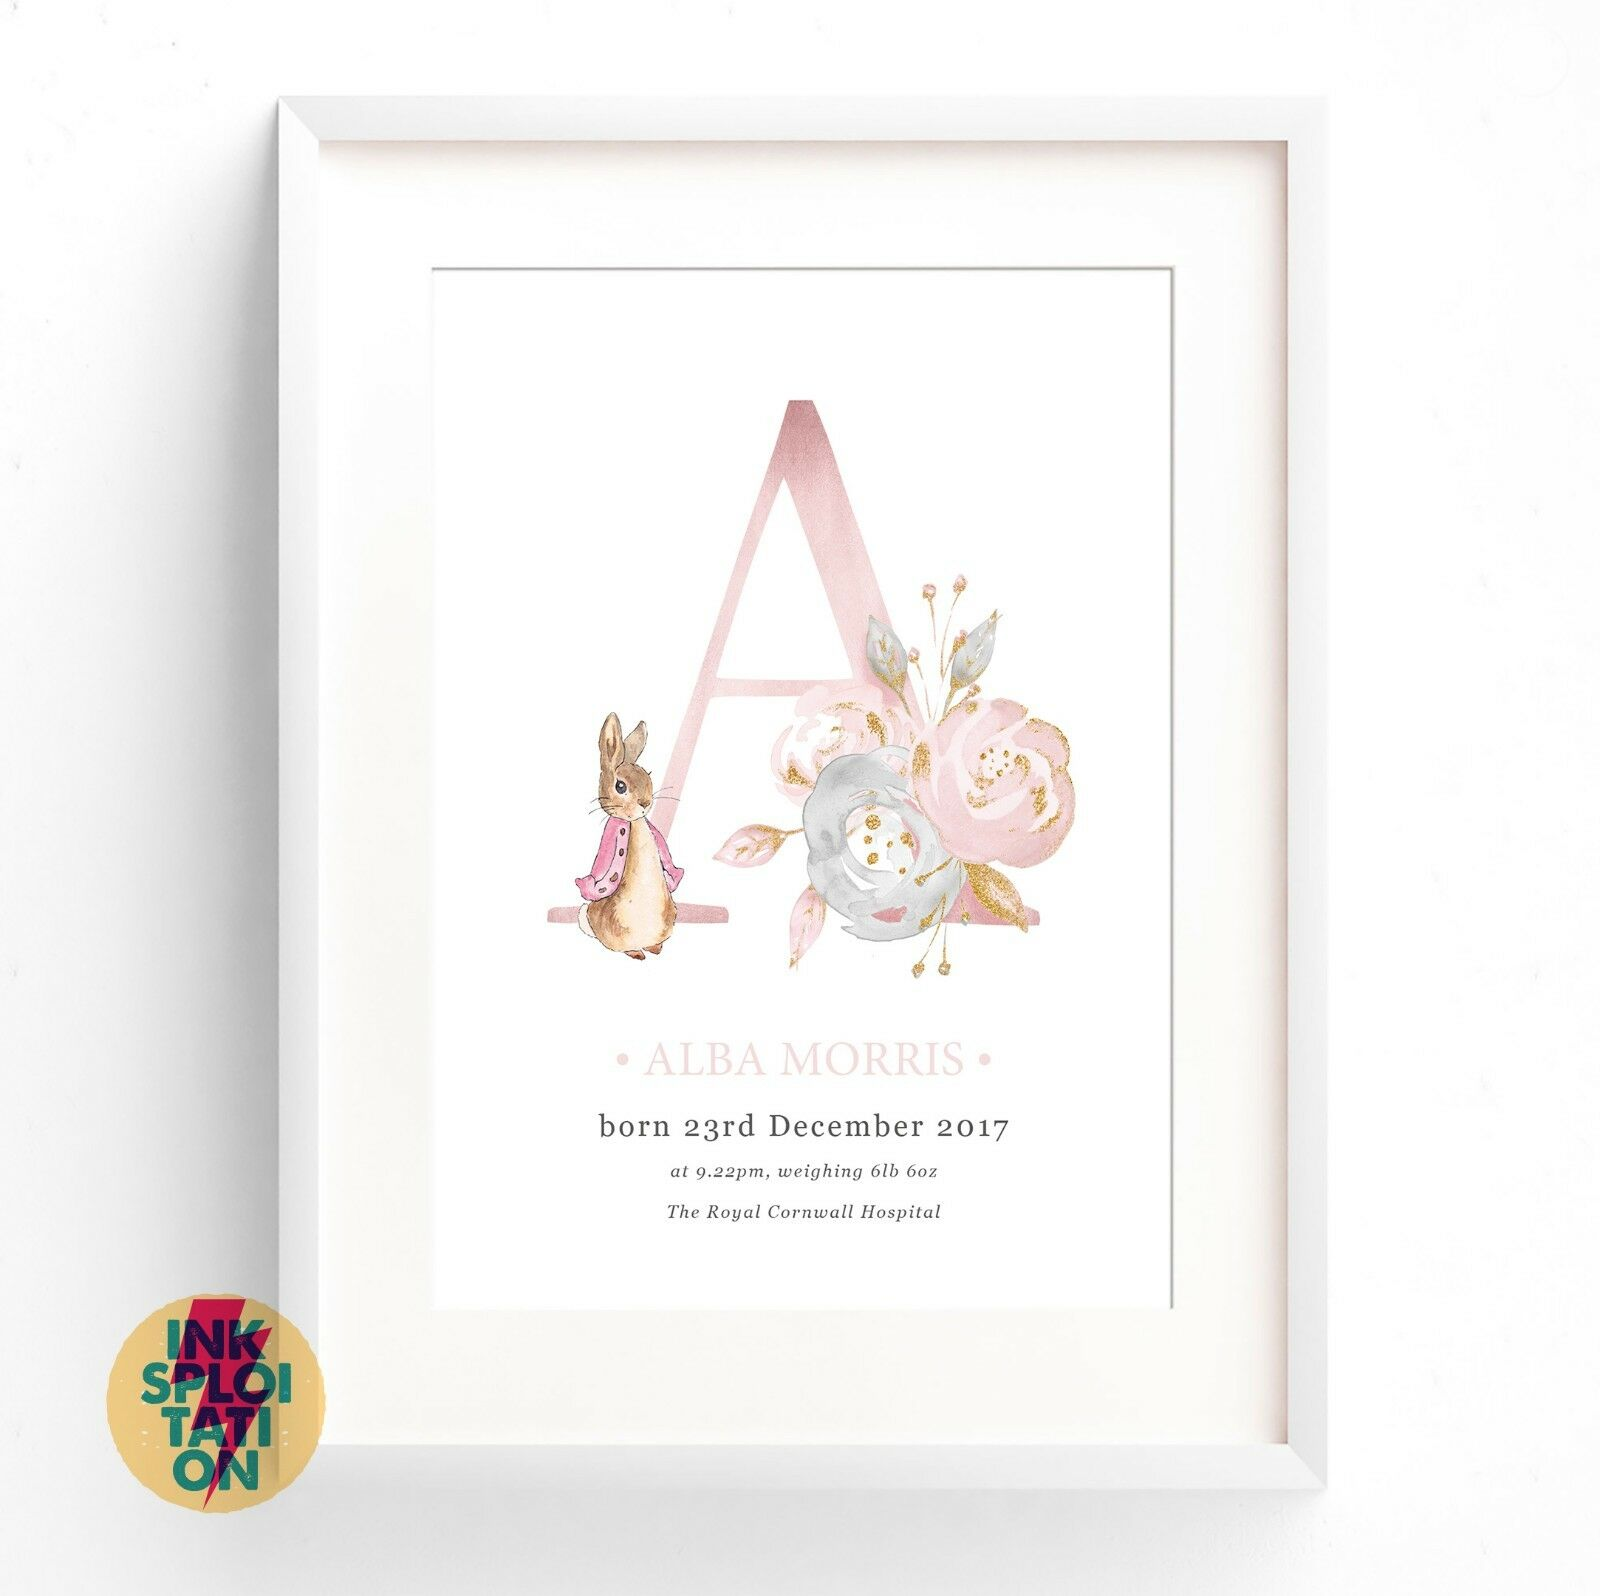 Beatrix Potter Baby Gifts Australia : Personalised peter rabbit gift nursery christening new